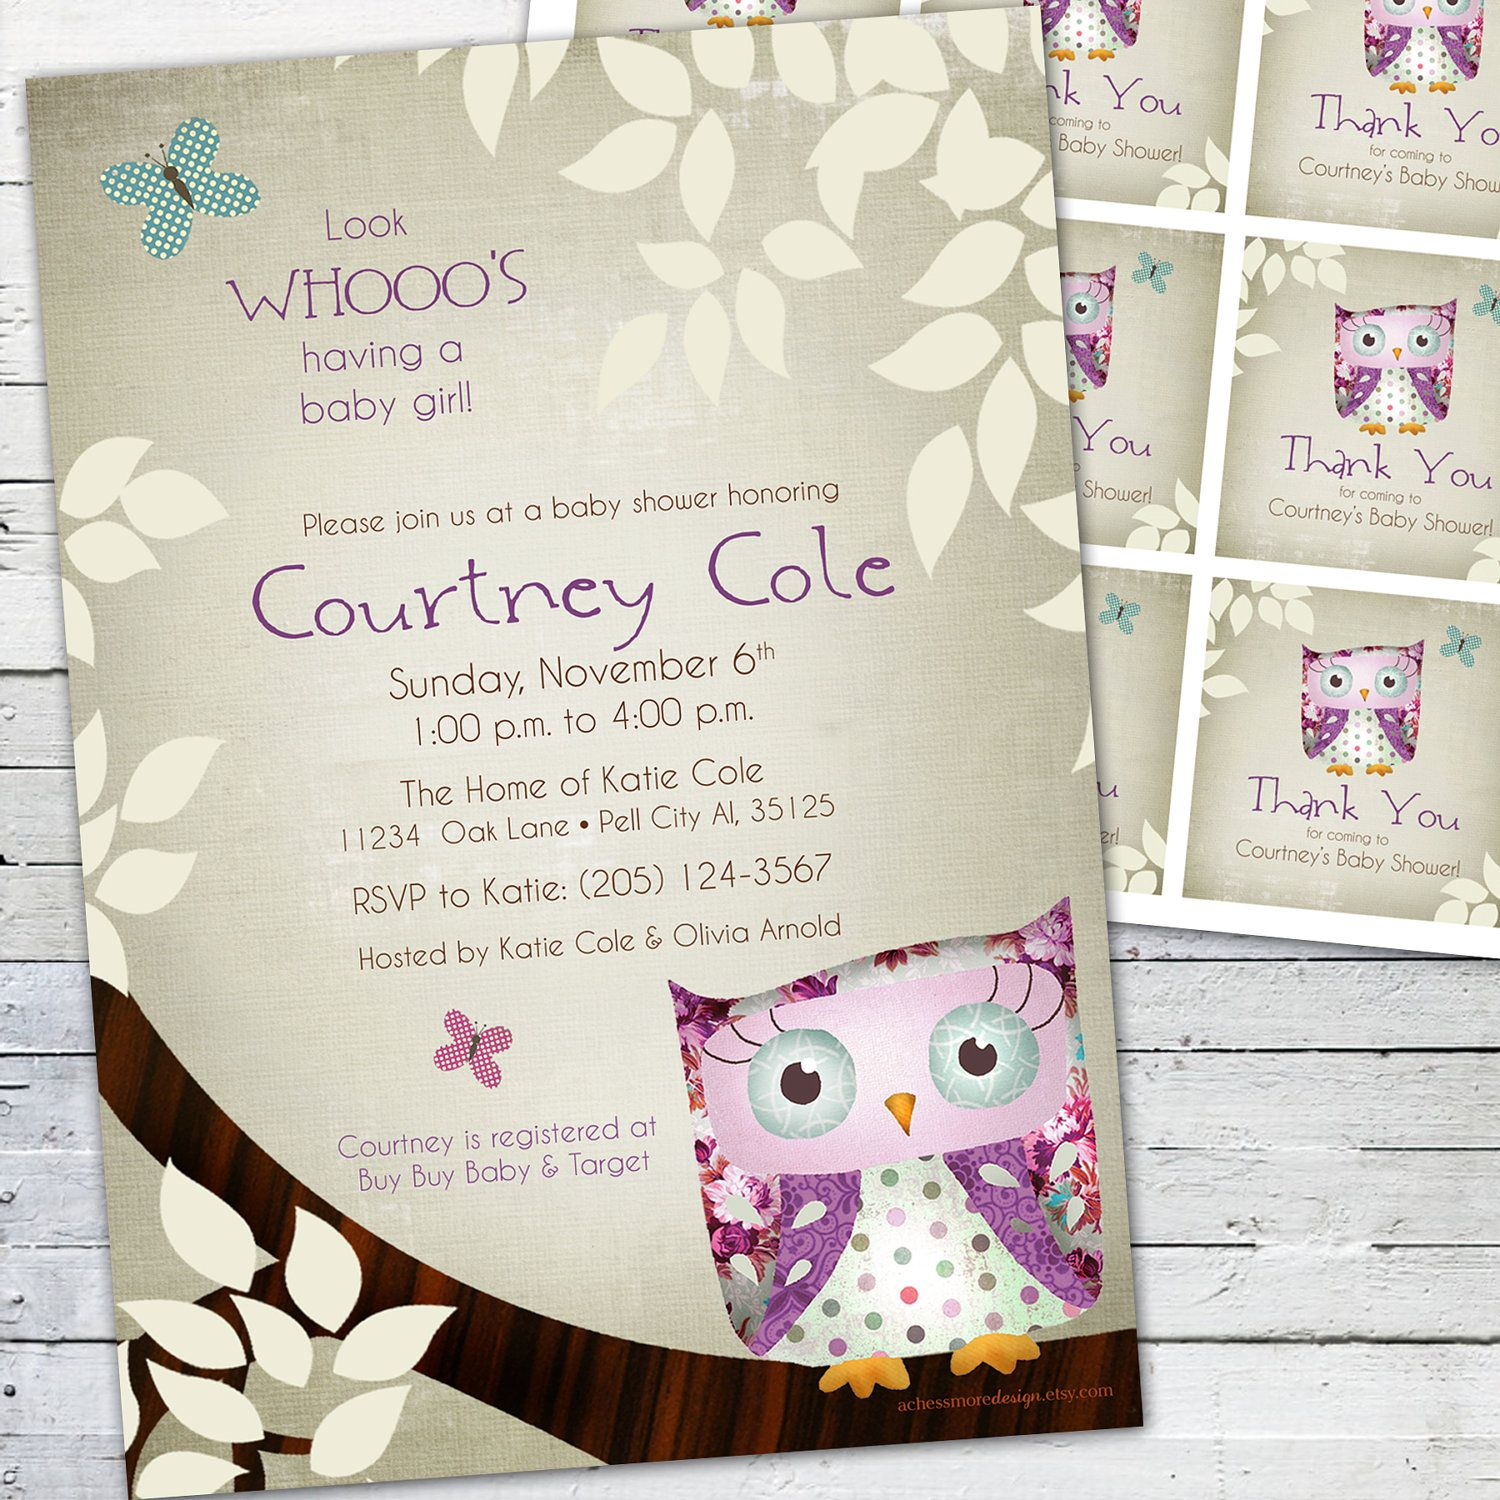 Vintage Owl Baby Shower Invitations: Owl Baby Shower Invitation And Gift Bag Tags (purple